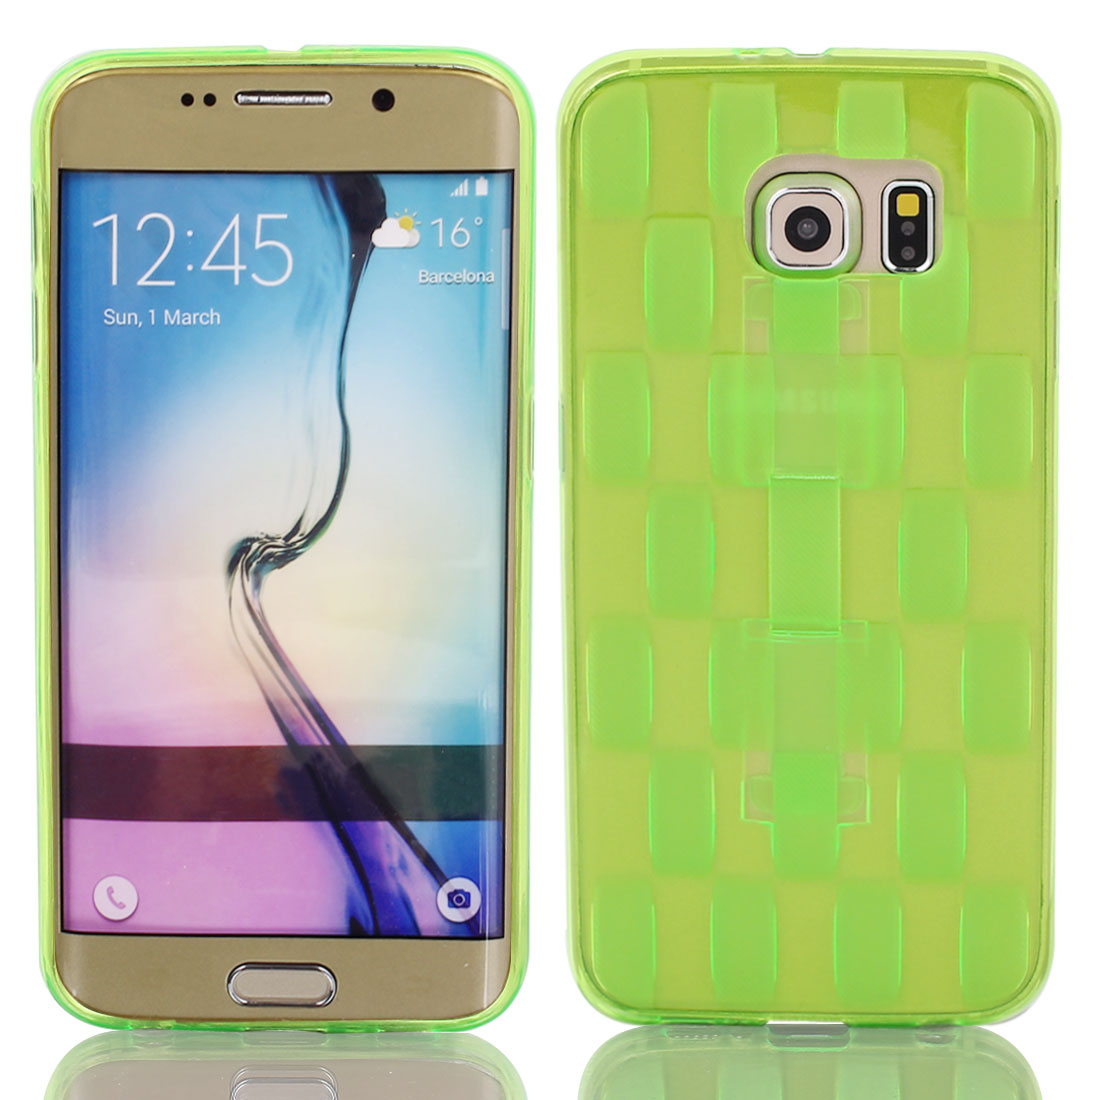 TPU Ultra-thin Rugged Hybrid Skin Case Cover Green for S6/G9200